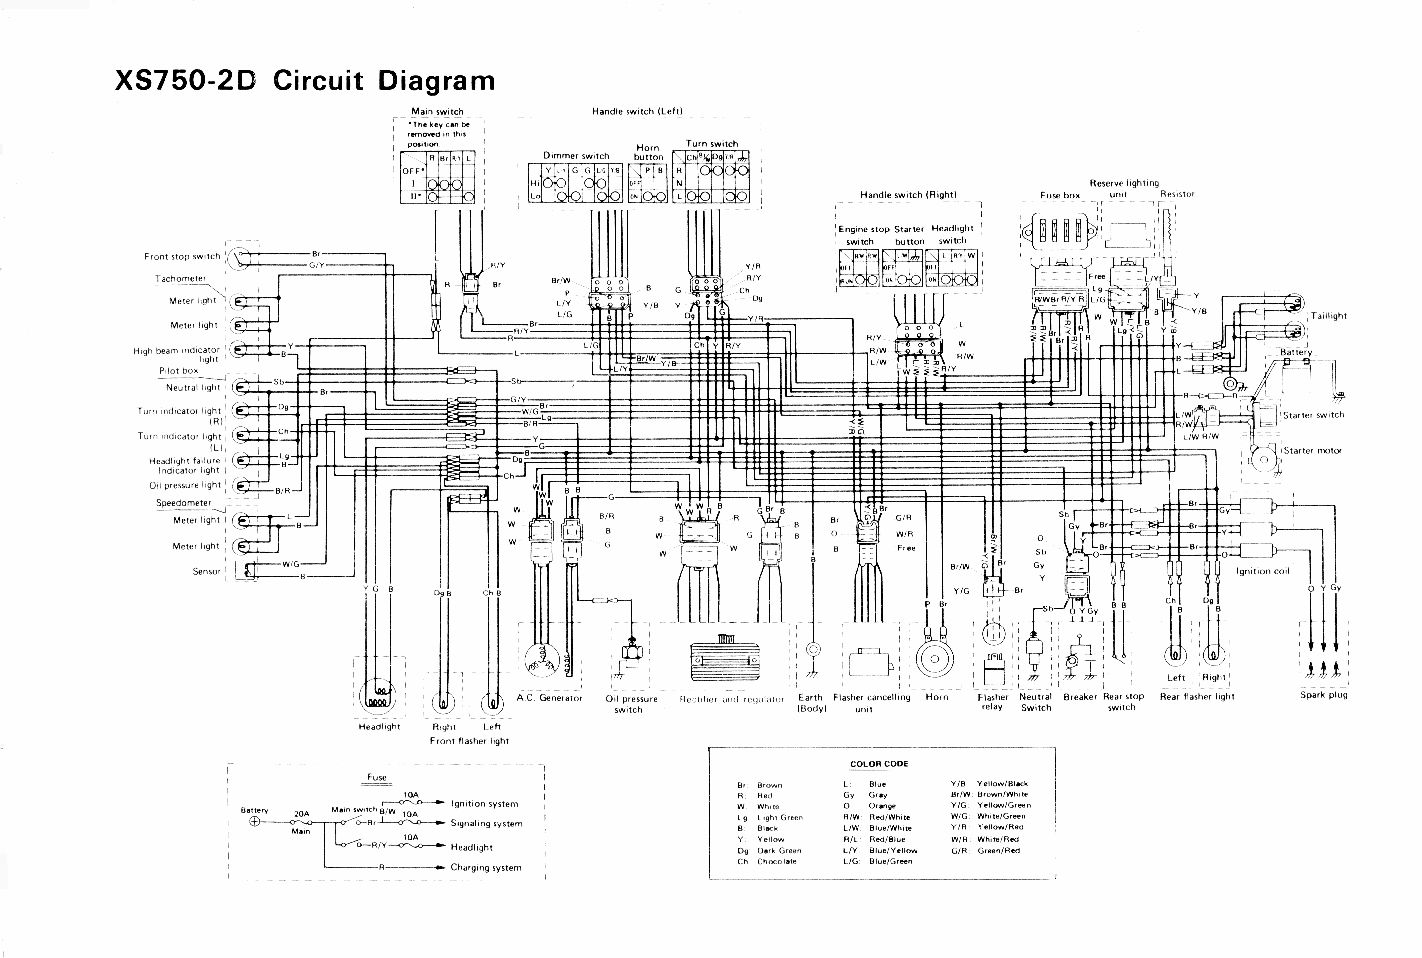 Wiring diagram for the XS750-2D. XS850 Wiring Diagram